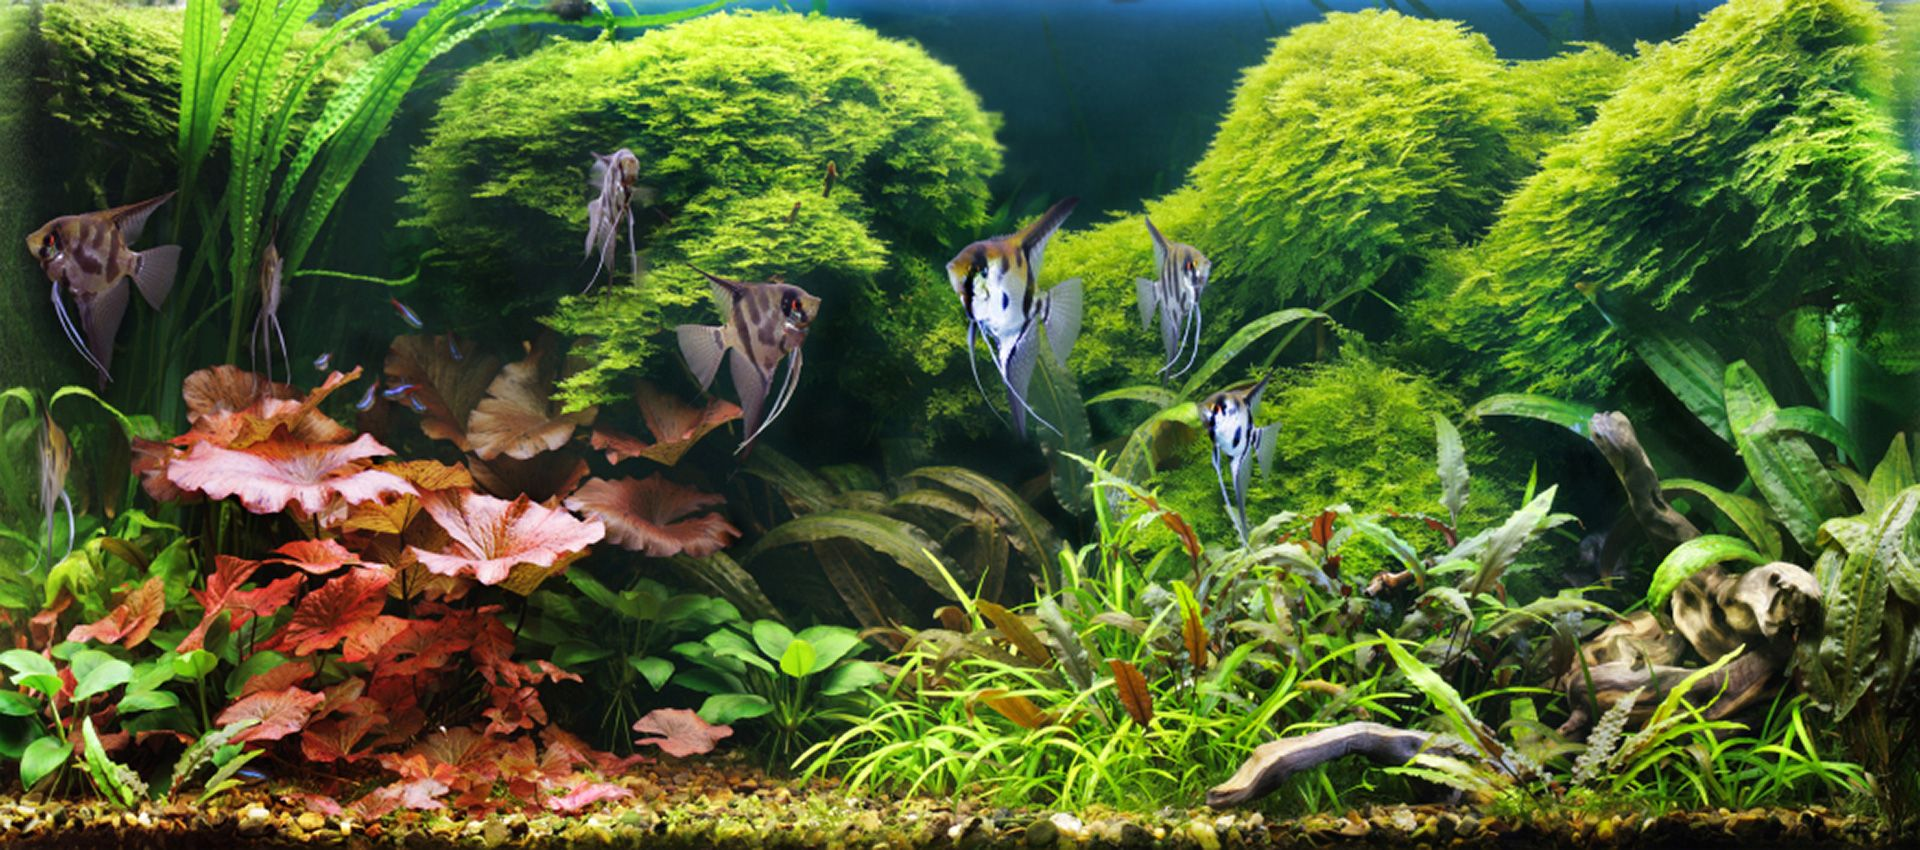 500 freshwater aquarium fish by greg jennings - Great Tutorial On Aquascaping A Planted Aquarium Step By Step Instructions W Lots Of Photos Fishtank Planted Pinterest Planted Aquarium